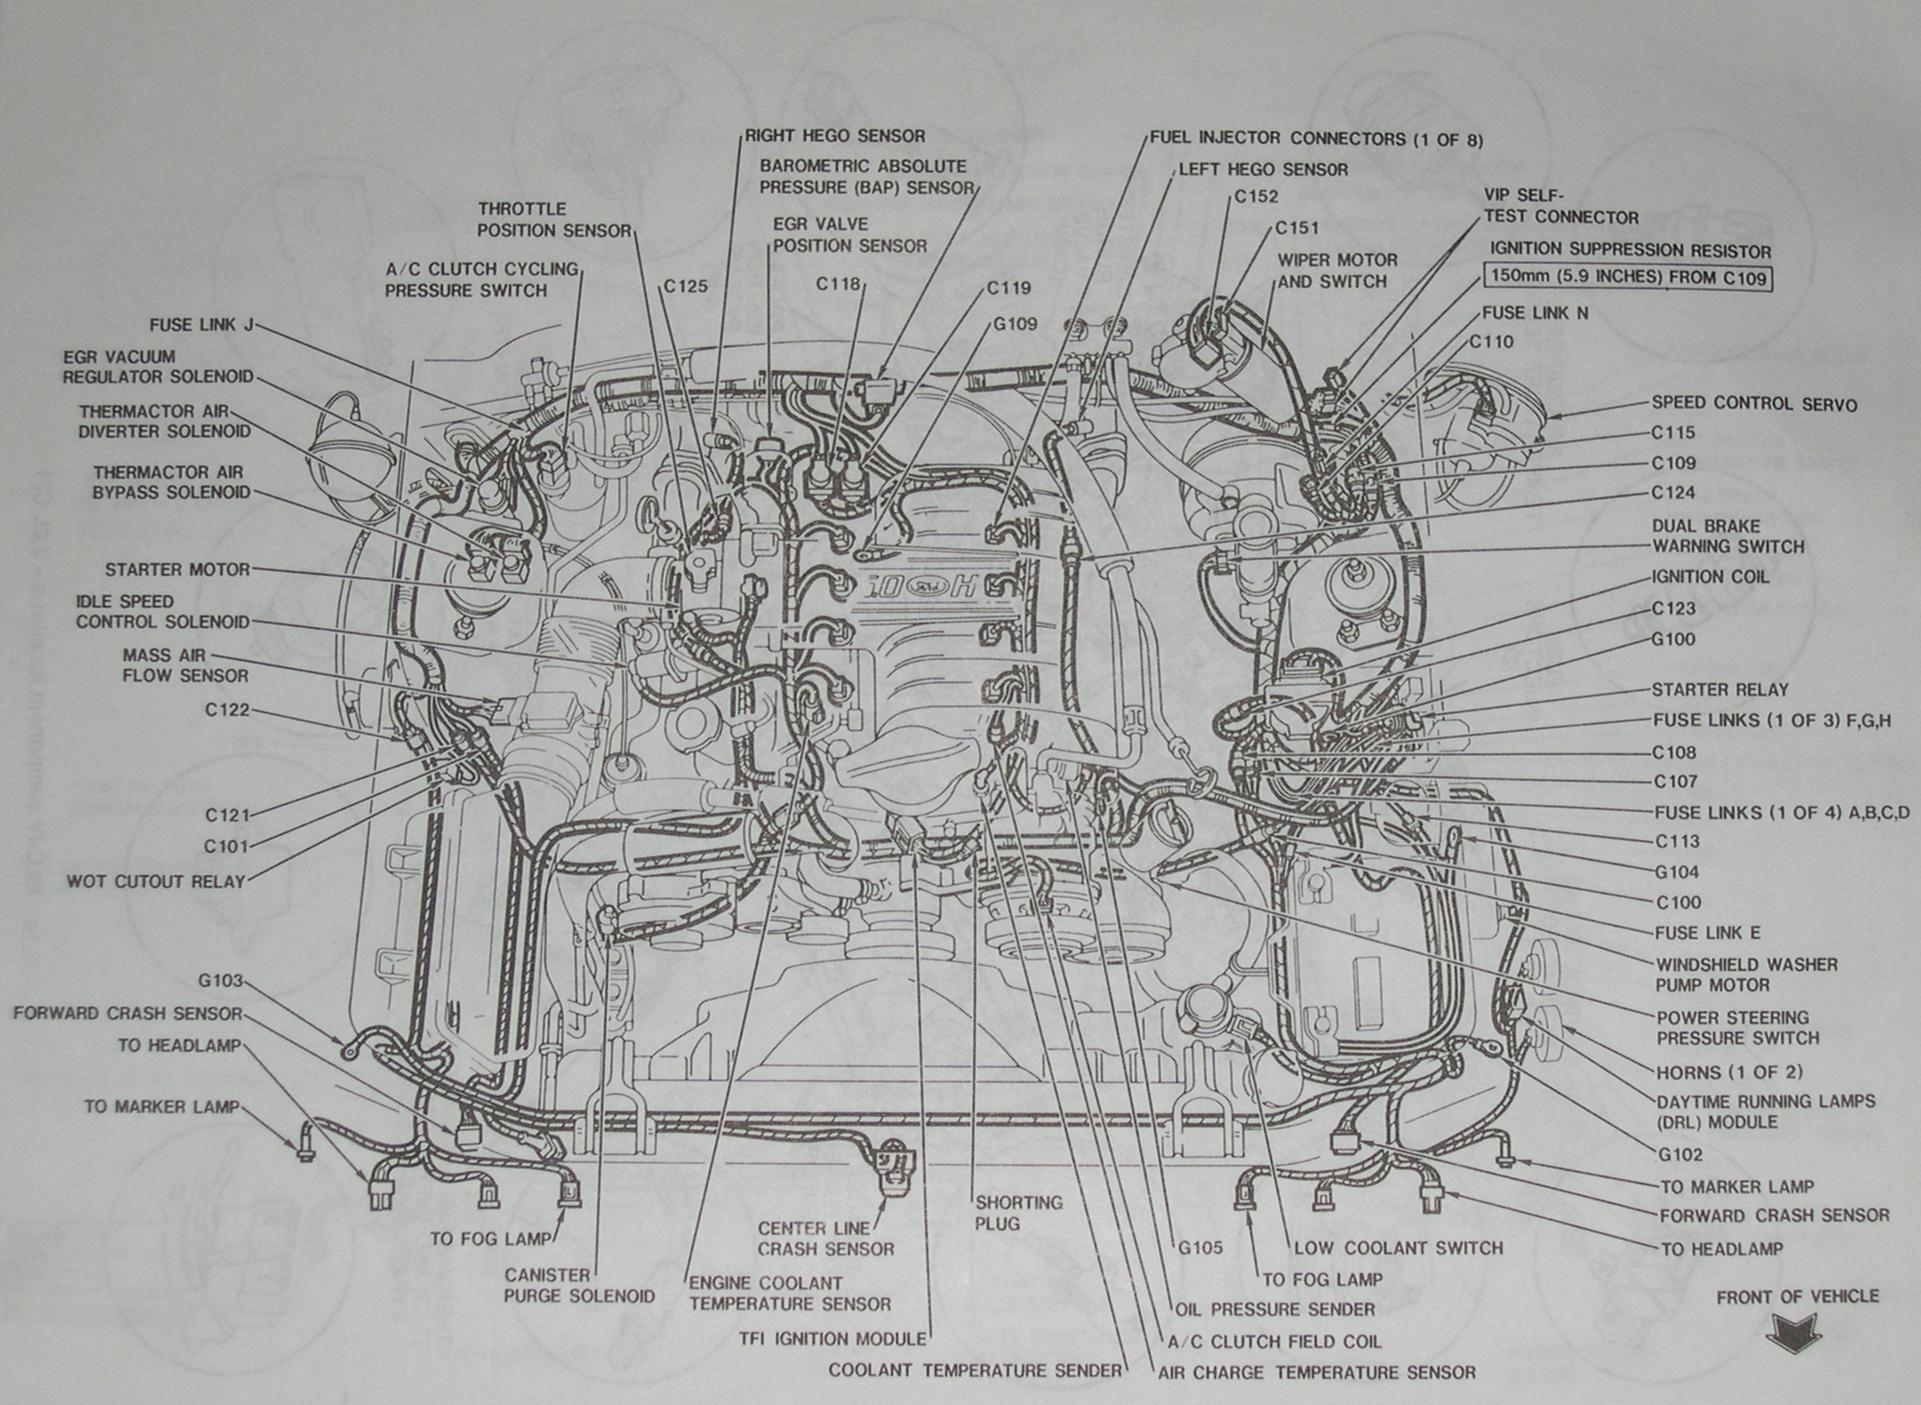 94-95 Engine Bay Diagram